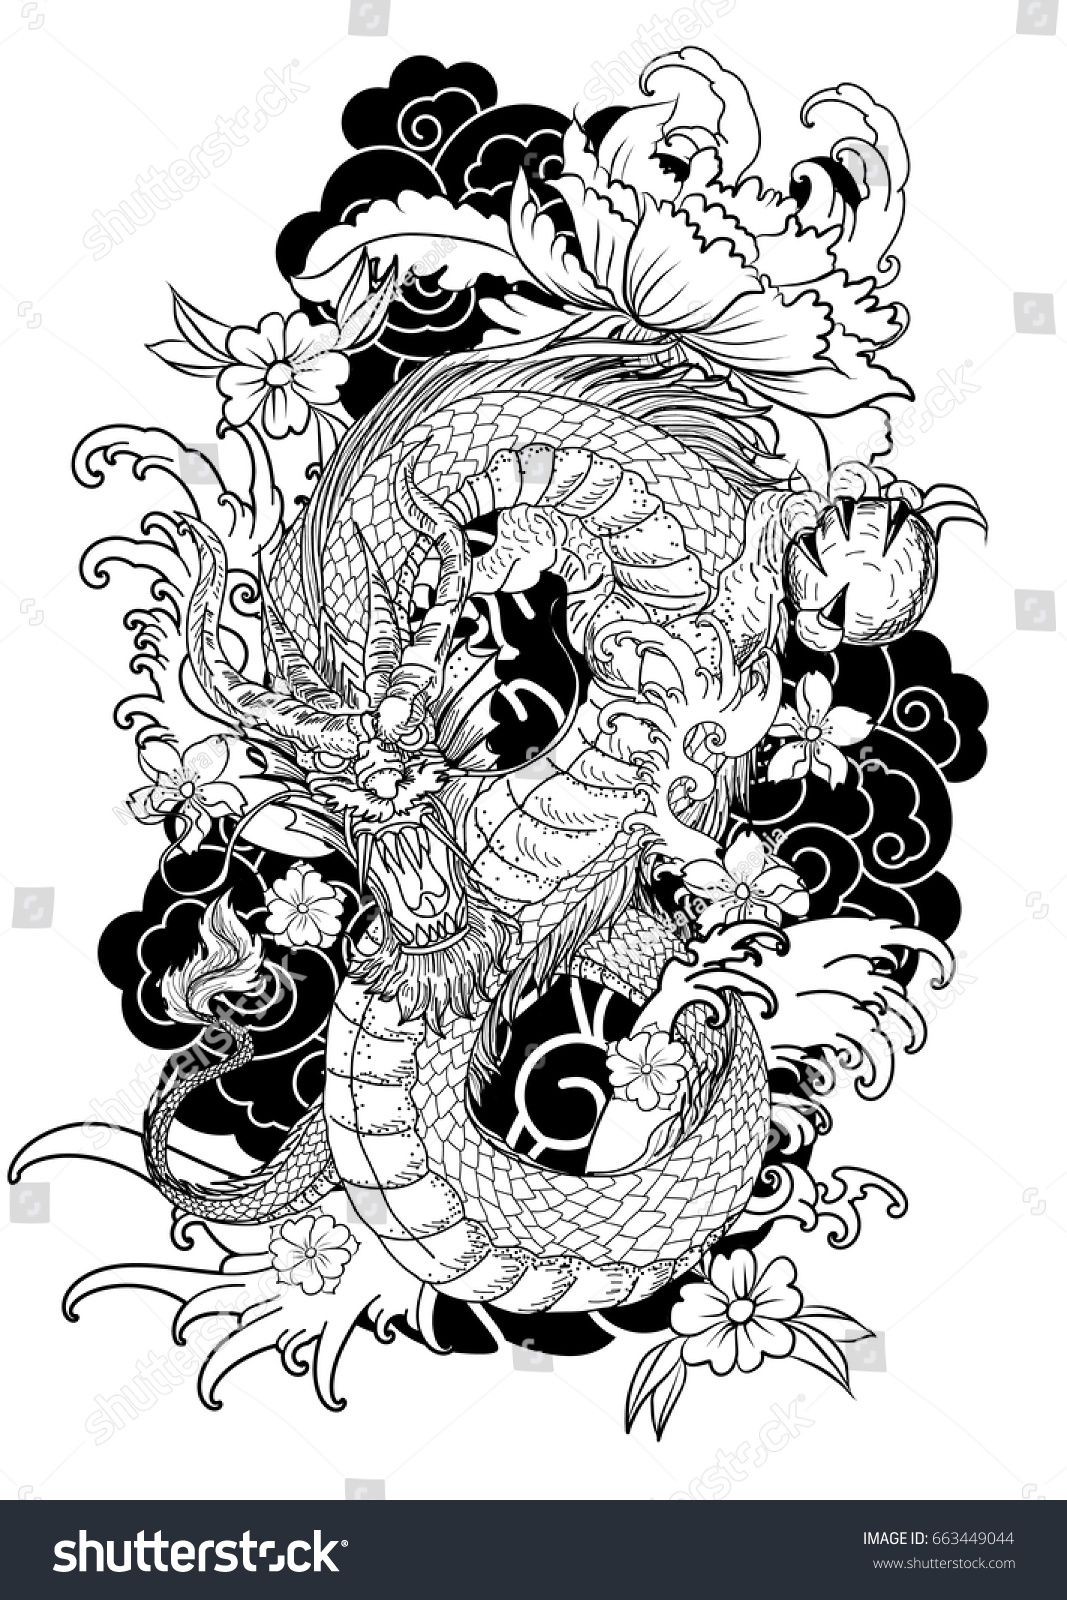 Hand Drawn Dragon Tattoo Coloring Book Japanese Styledragon Tattoo Hand Drawn Dragon Tattoo Colour Tattoo Coloring Book Tattoo Design Drawings